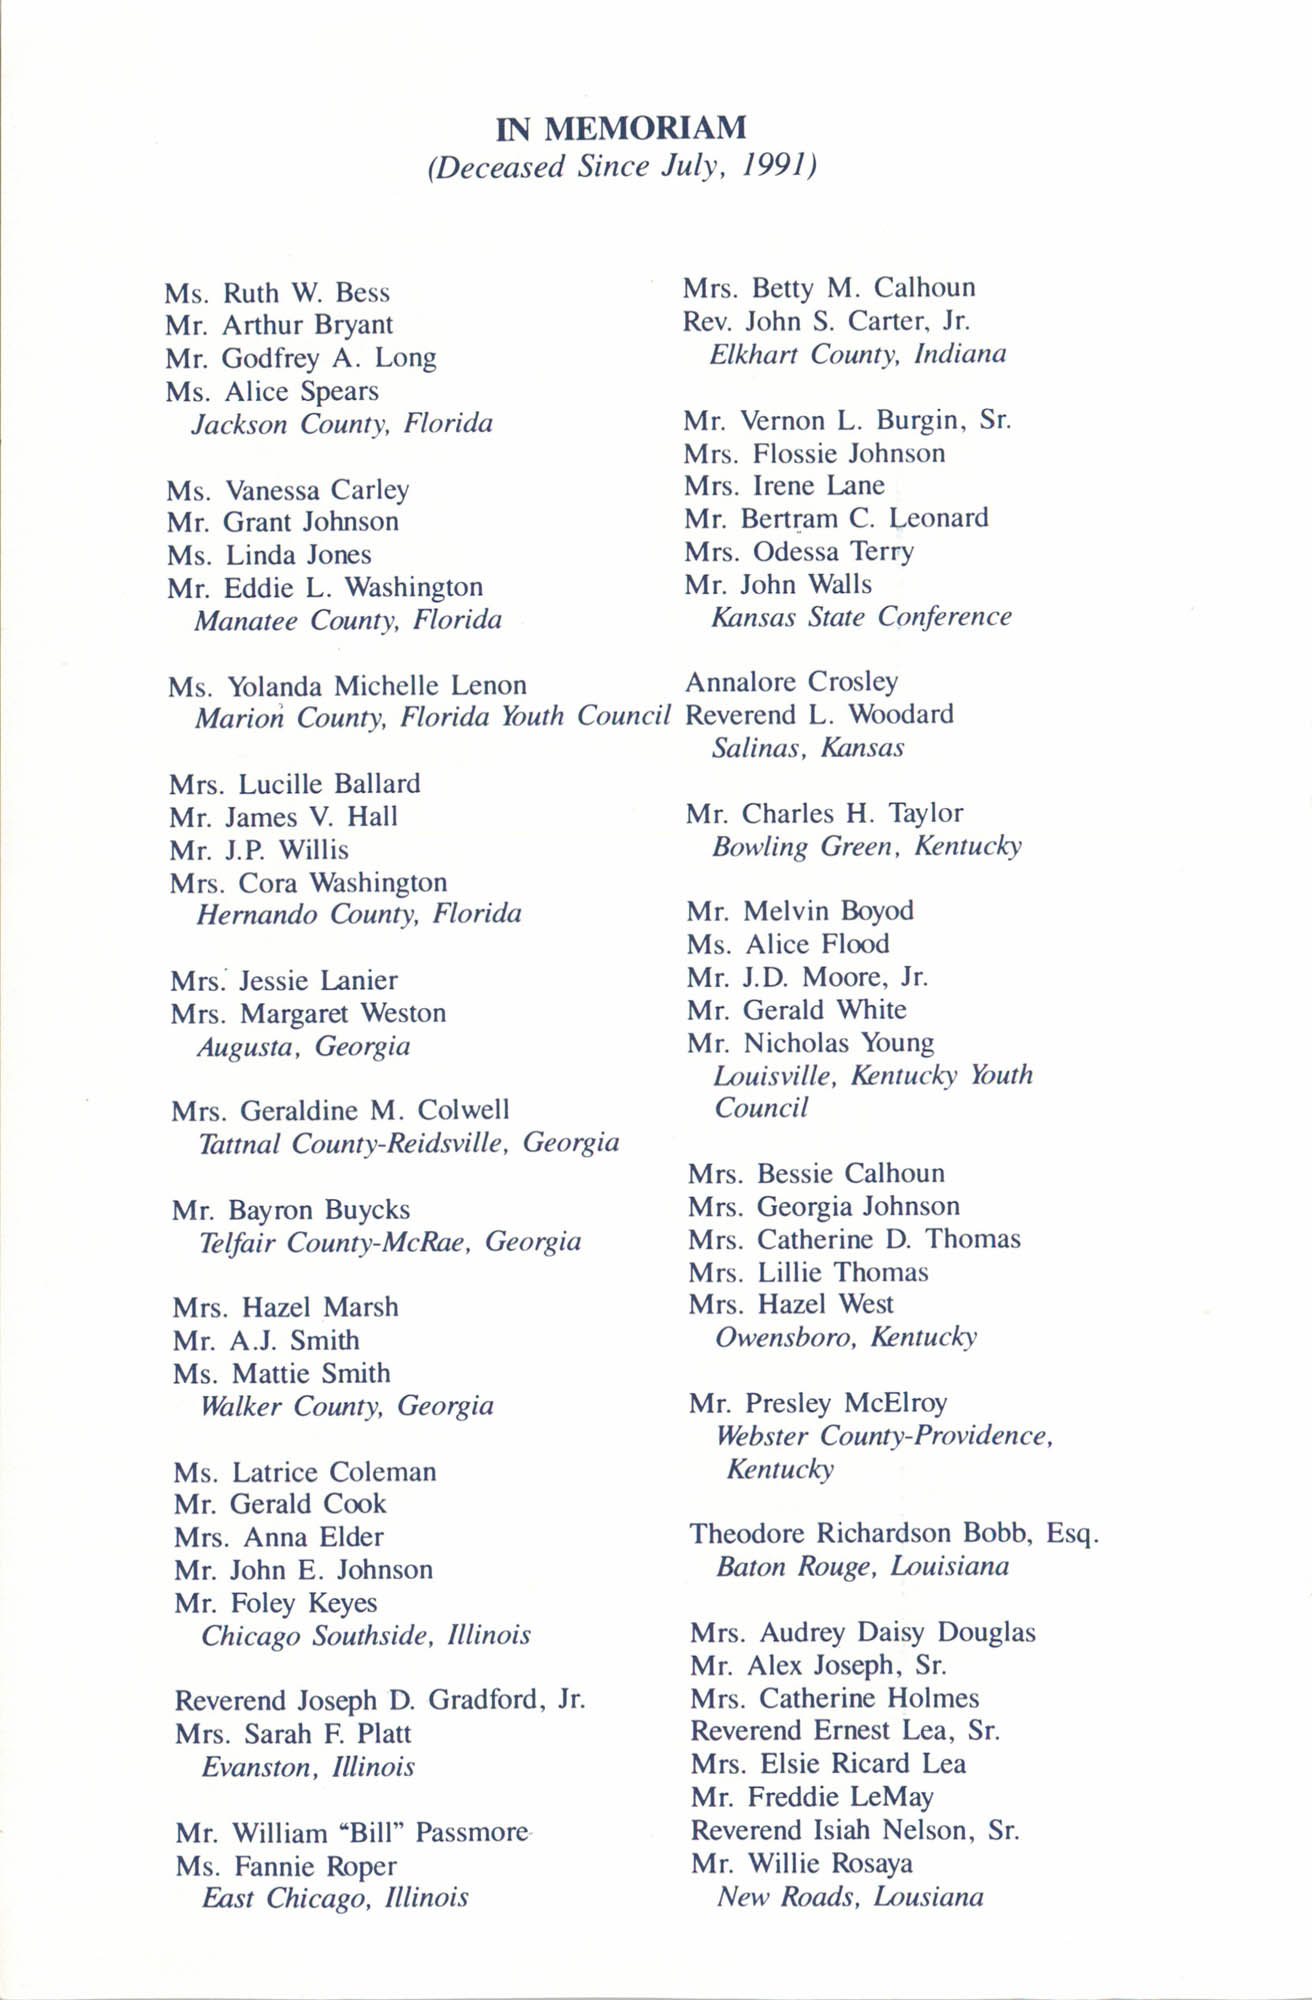 Memorial Service in Tribute to Deceased NAACP Officers and Member, July 12, 1992, Page 5